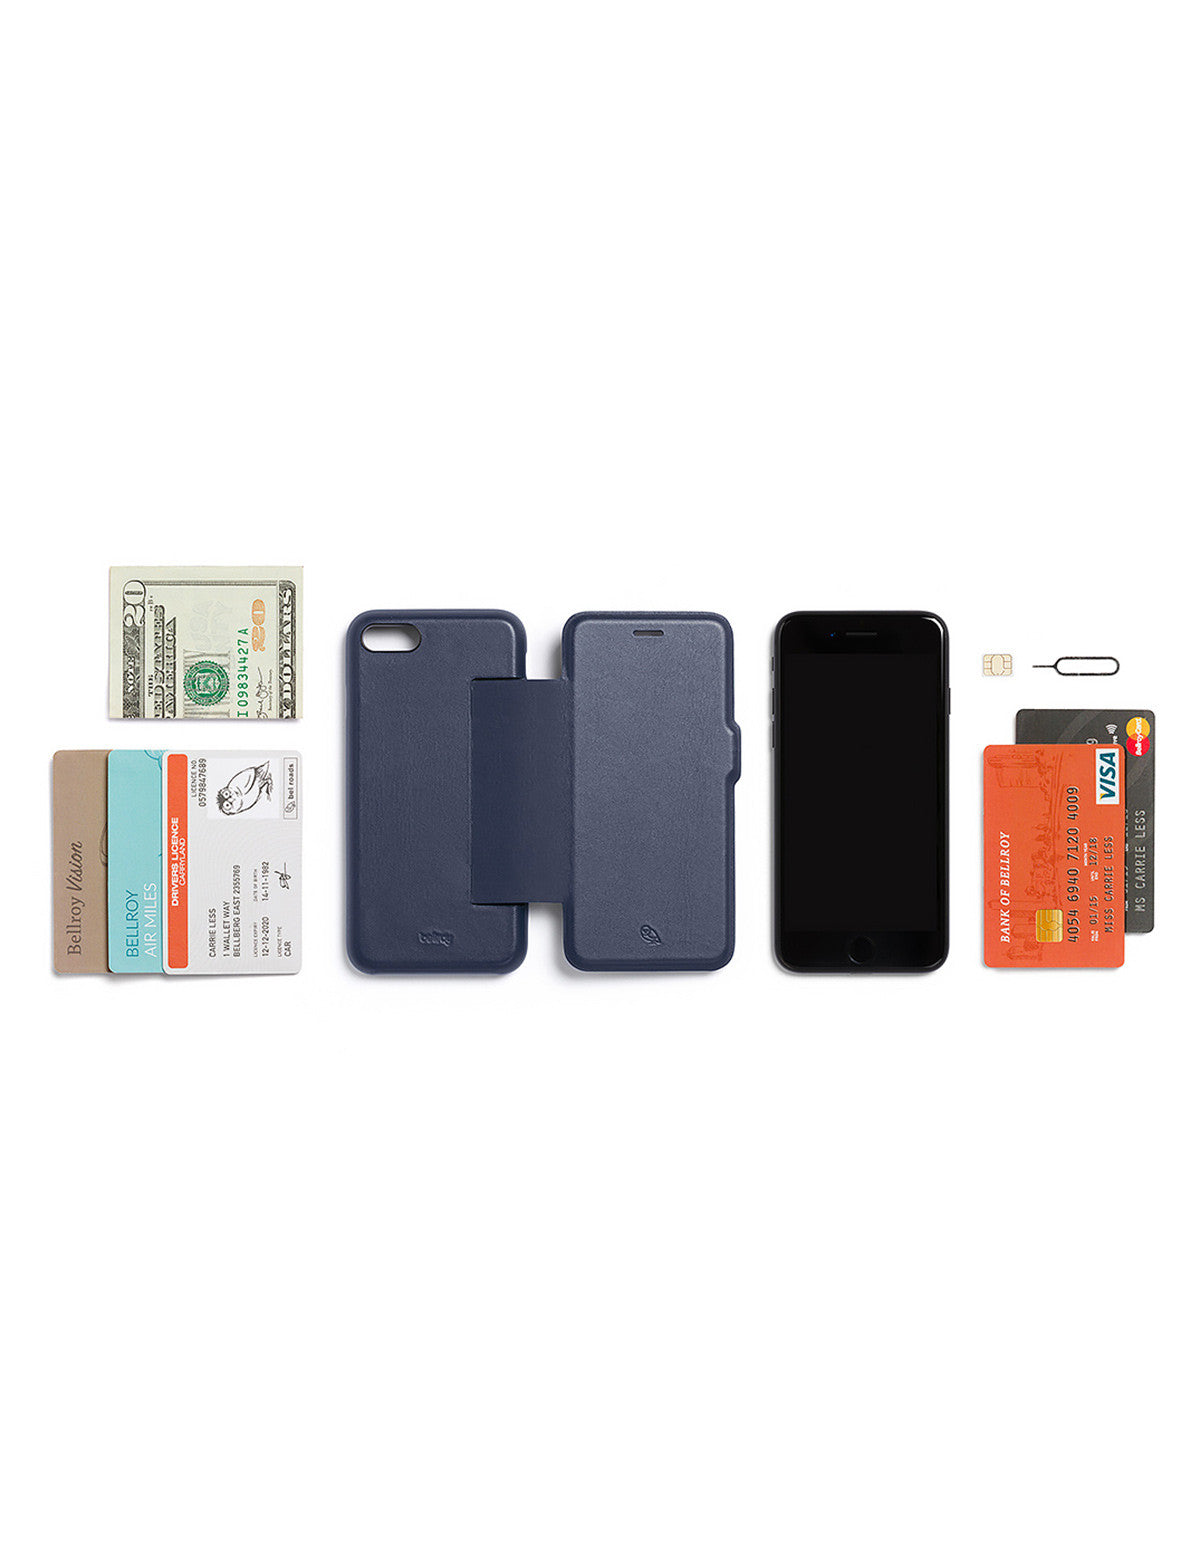 Bellroy Phone Wallet i7 Blue Steel - Still Life - 5